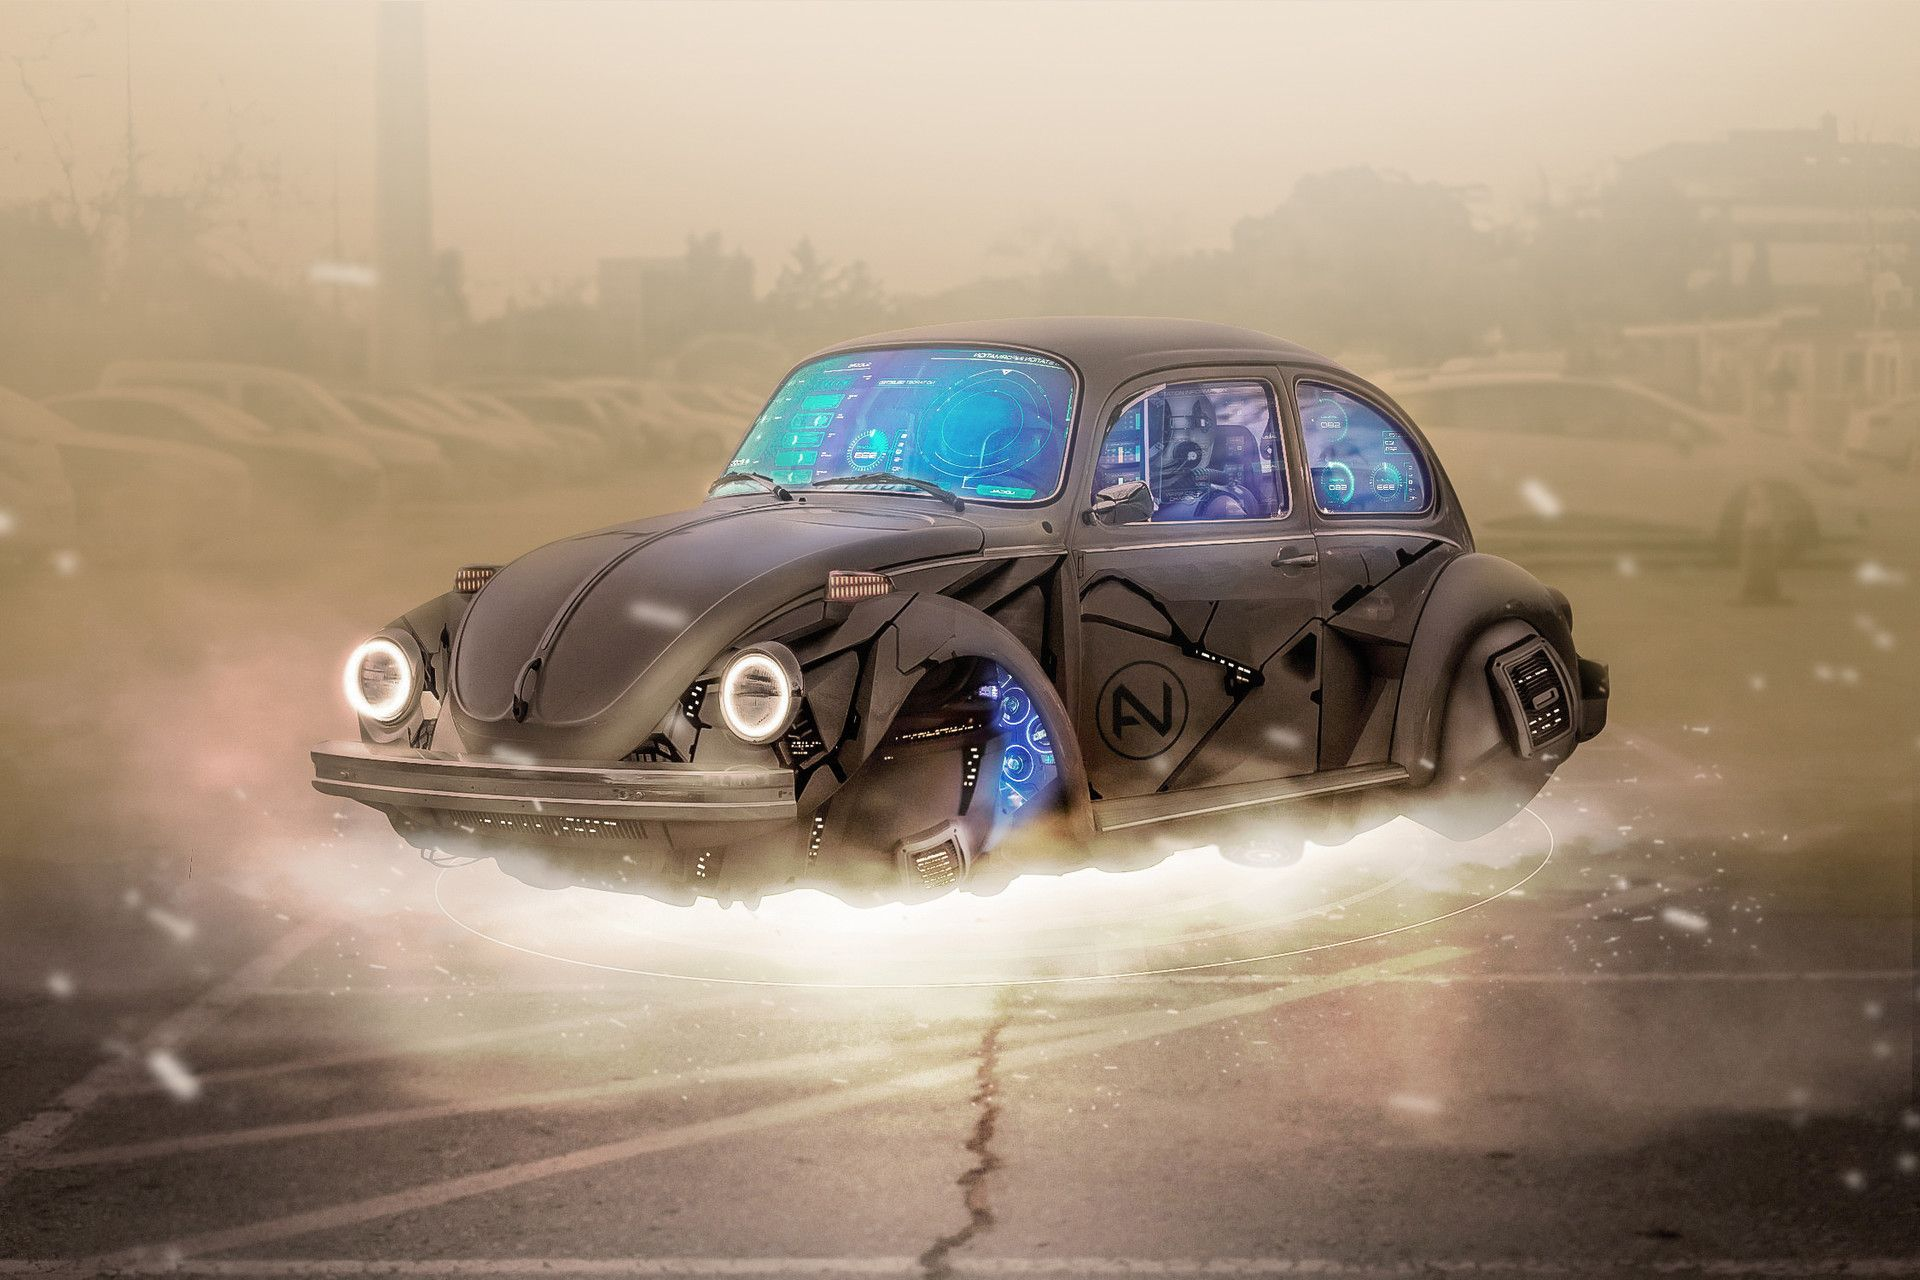 Old Car Cyberpunk By Nicolas Alvarez With Images Cyberpunk